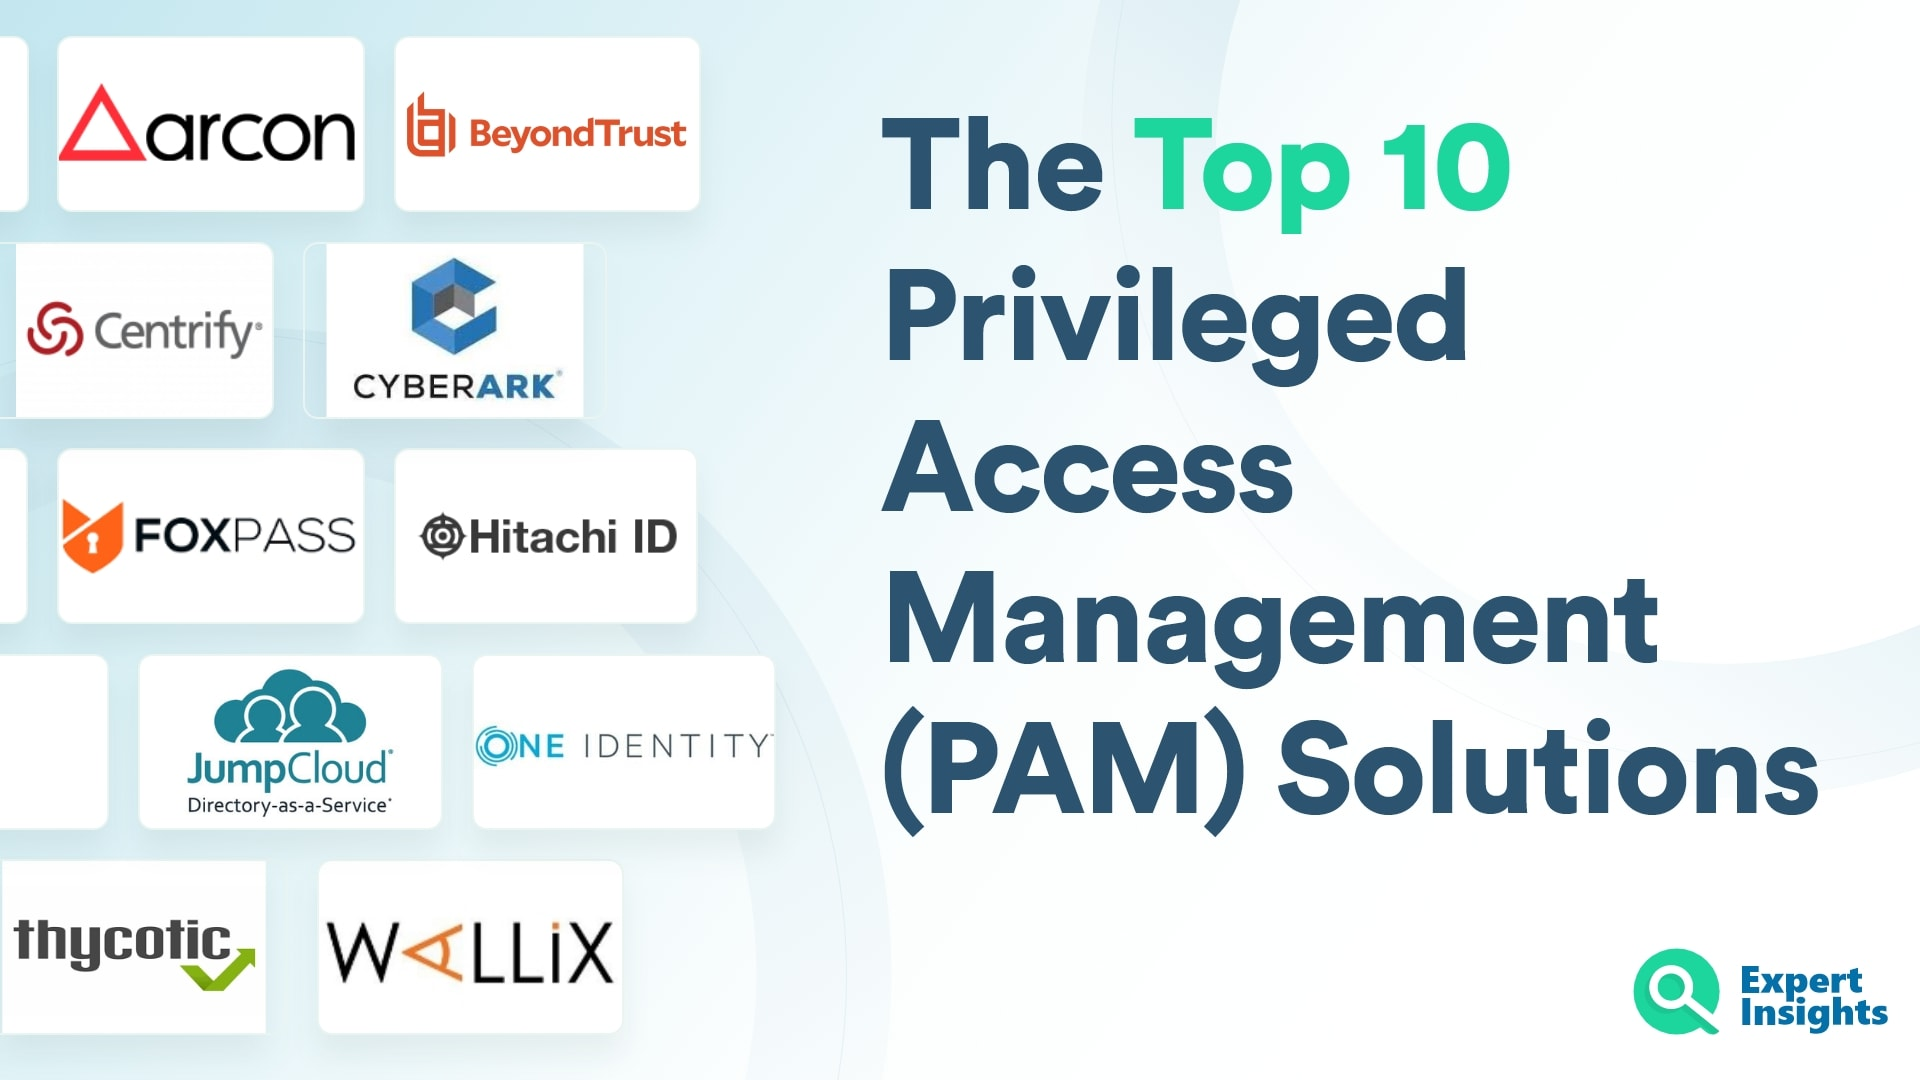 The Top 10 Privileged Access Management (PAM) Solutions - Expert Insights